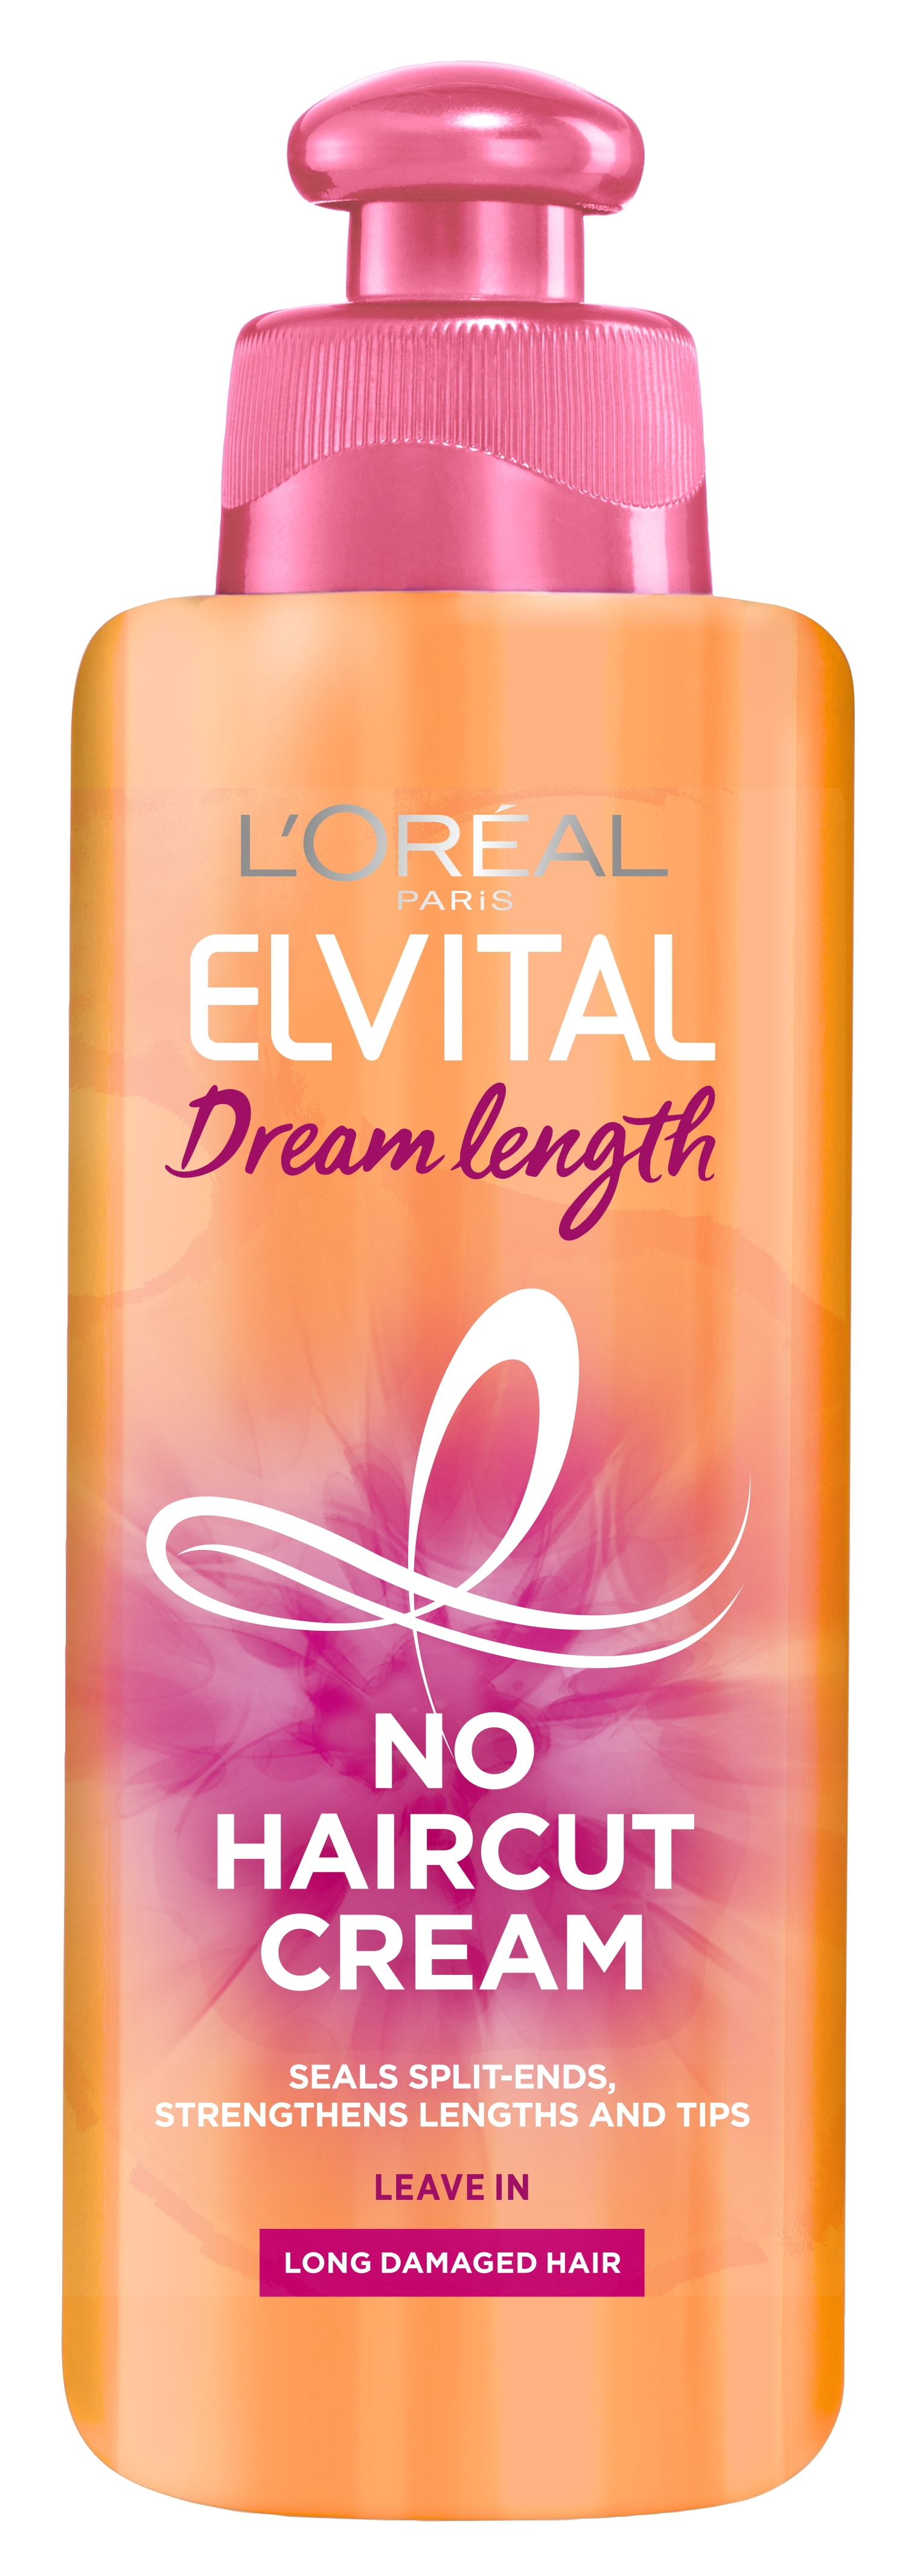 LOR Elvital Dream Lenghts No Haircut Cream:200 ml 200 ml